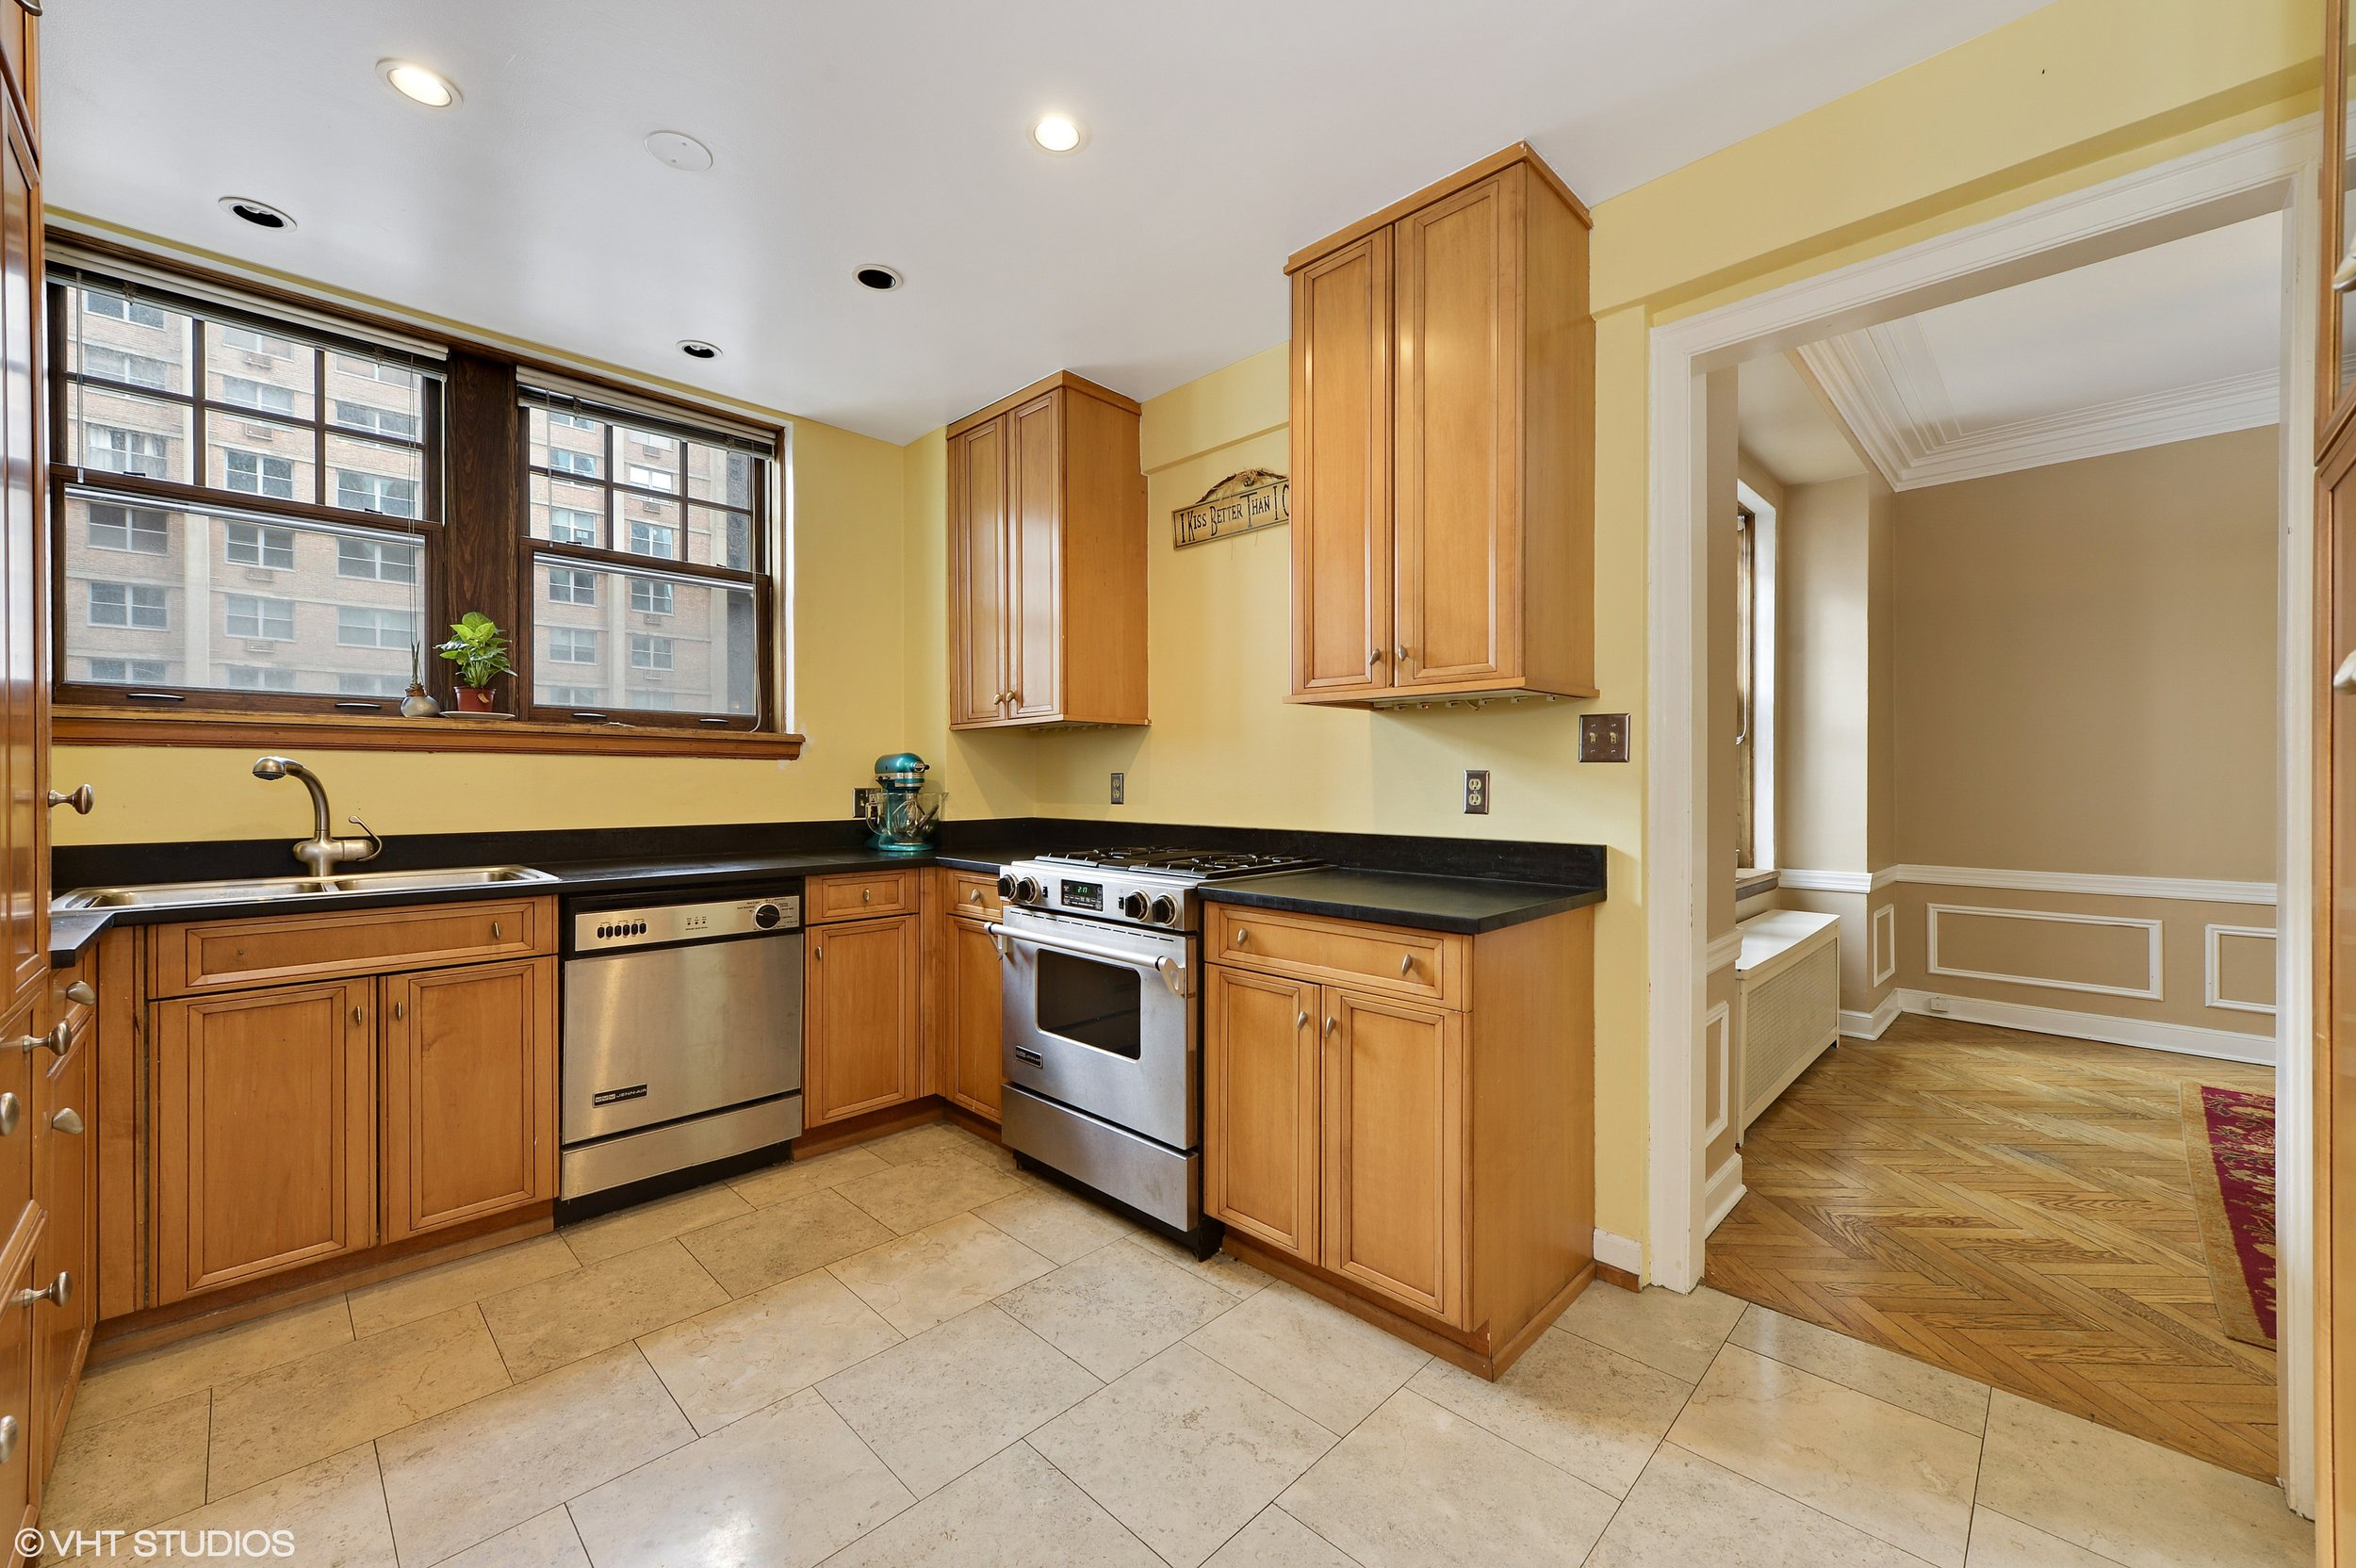 05_421WestMelroseSt_3B_5_Kitchen_HiRes.jpg